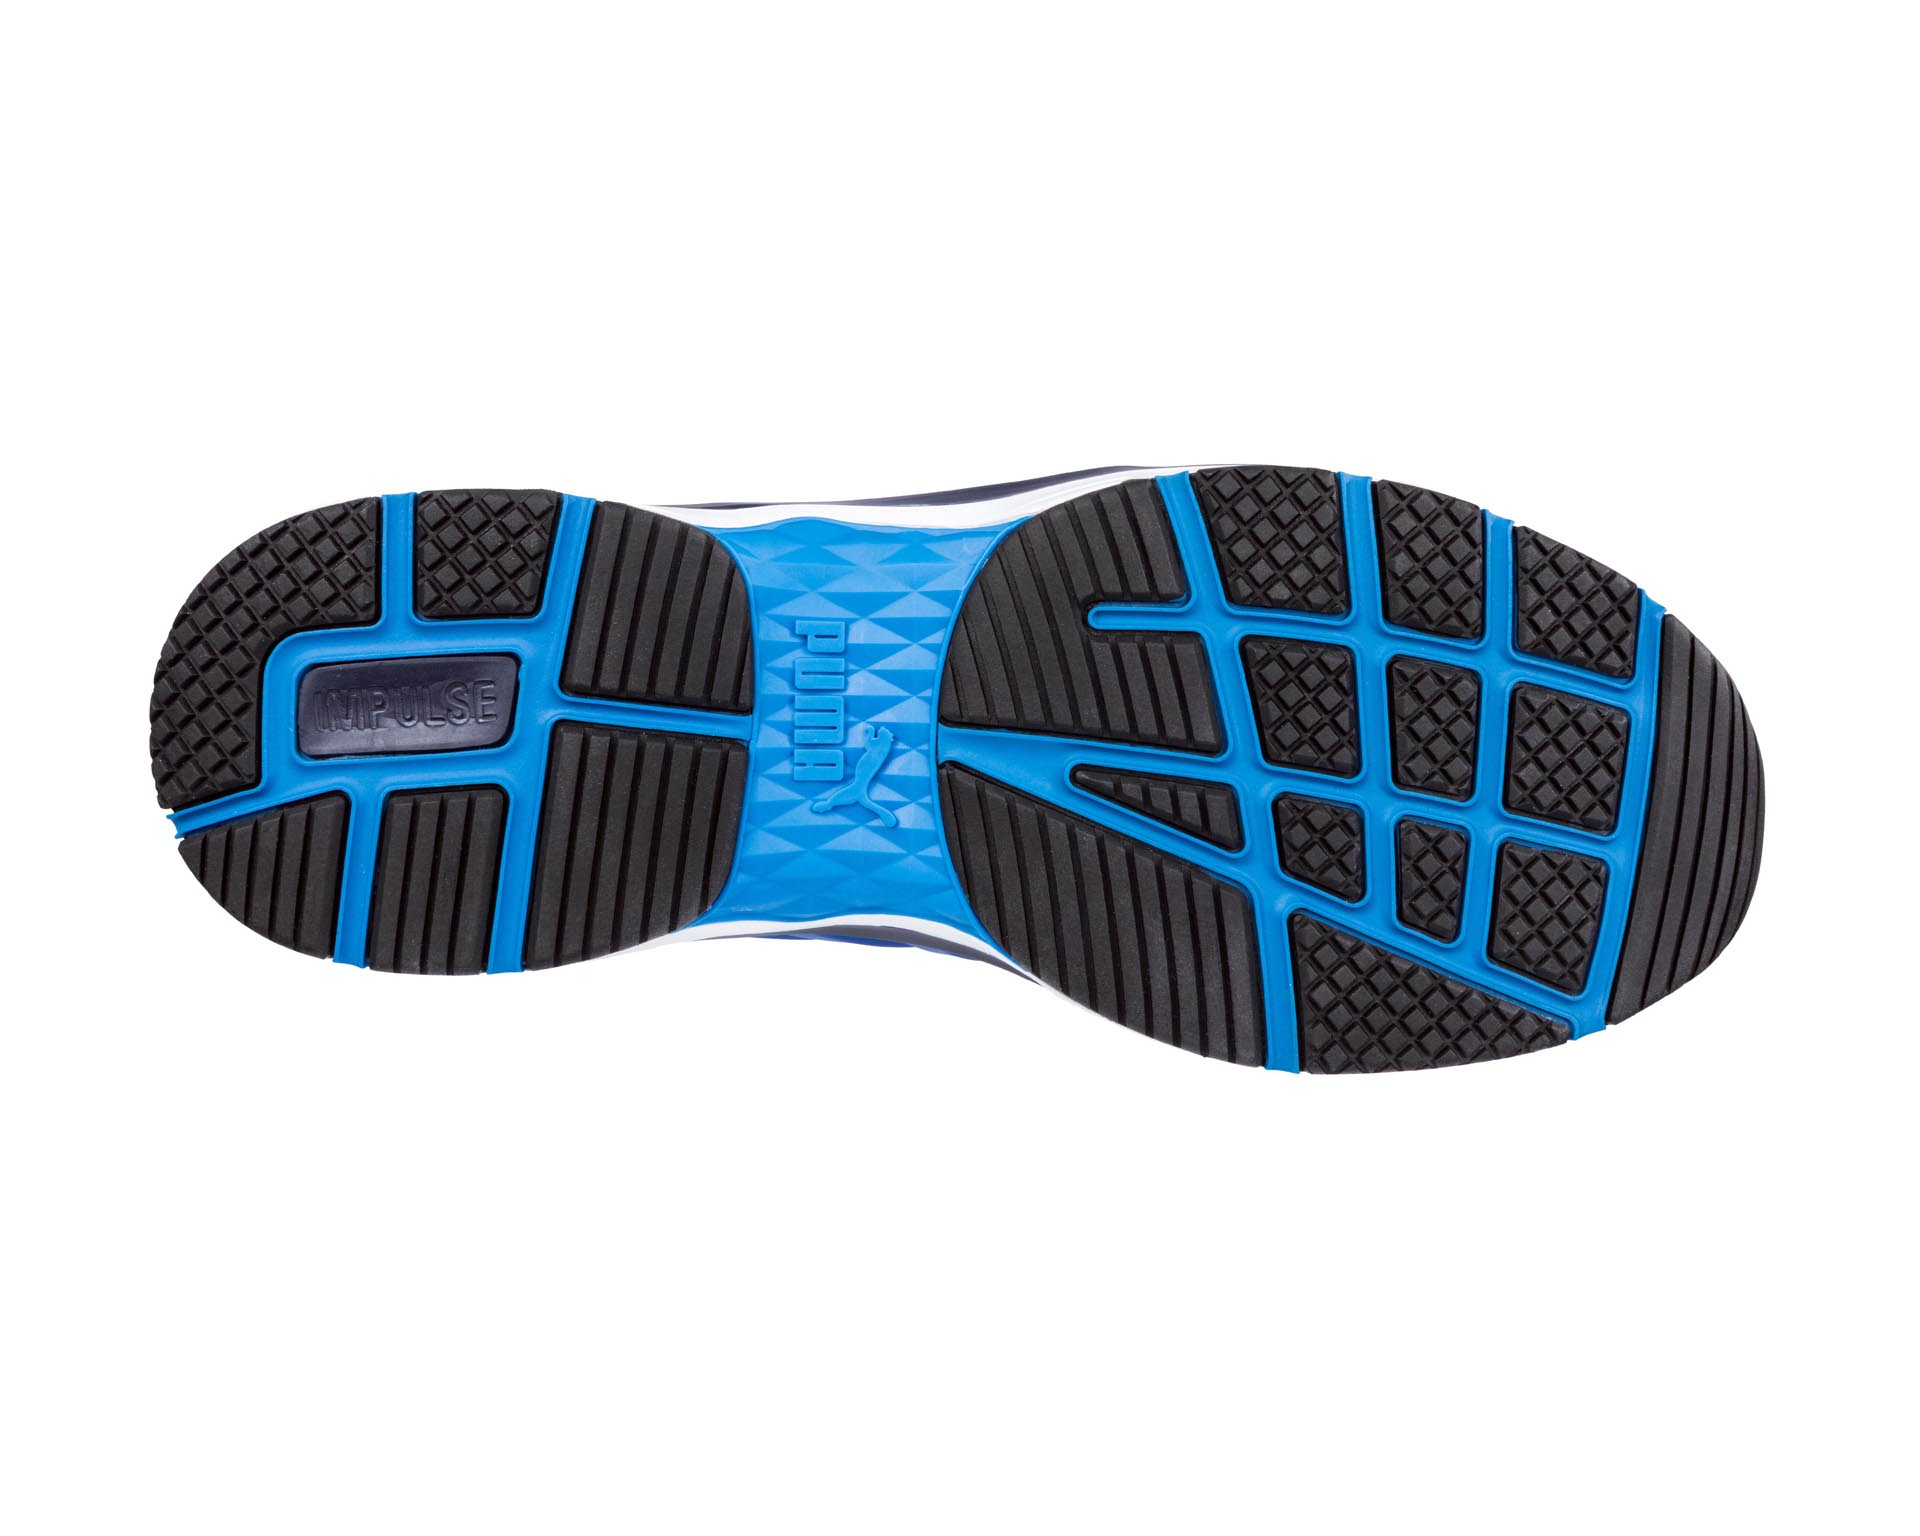 PUMA SAFETY Velocity 2.0 BLUE LOW S1P ESD HRO SRC | ISM Store